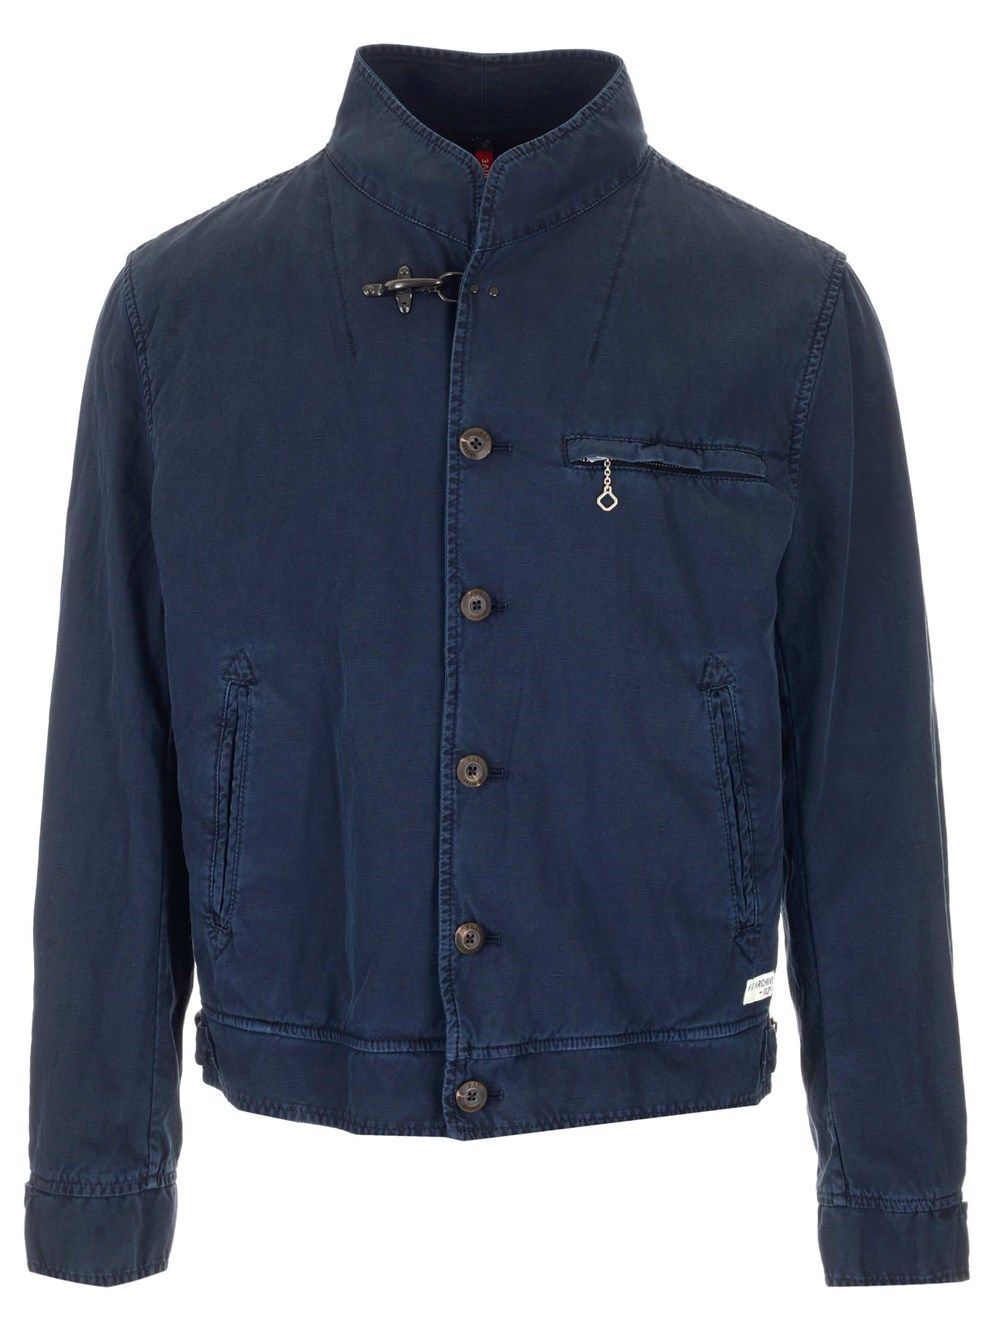 Fay FAY MEN'S BLUE OTHER MATERIALS OUTERWEAR JACKET